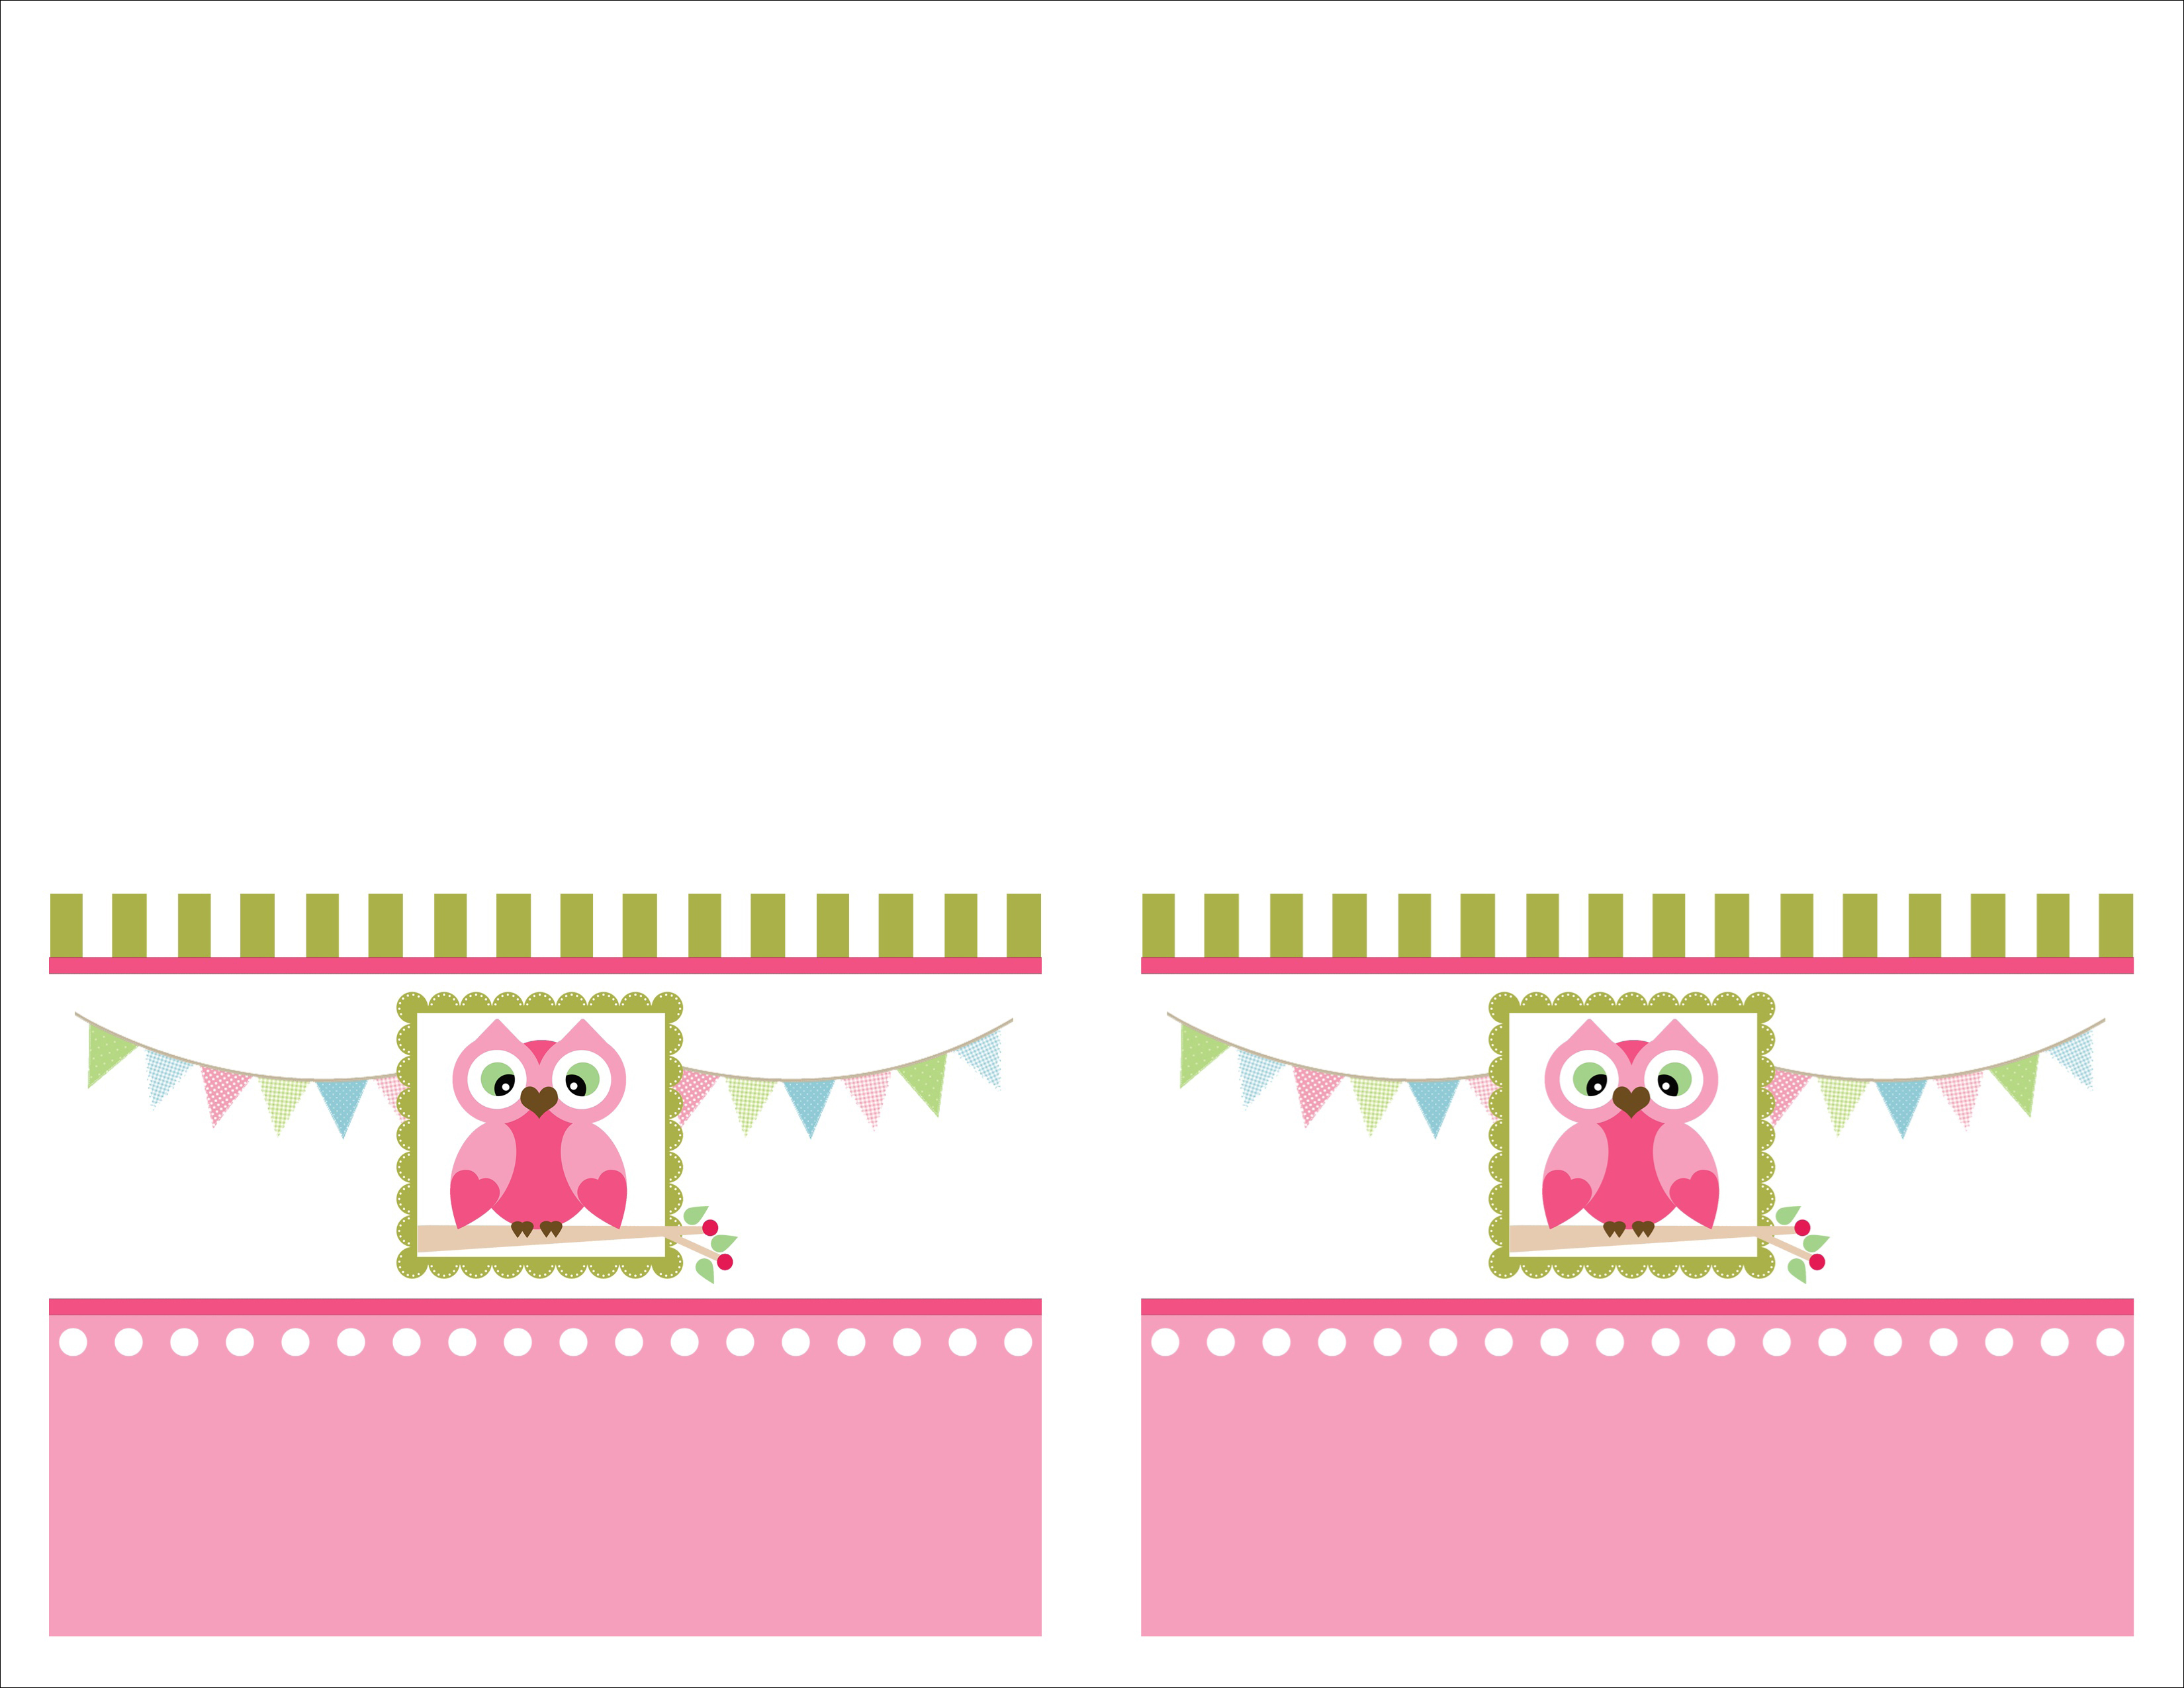 free birthday invitation printable cards ; birthday-party-print-invitation-cards-dress-trend-nature-free-printable-pink-color-rectangular-shape-owl-design-cover-solution